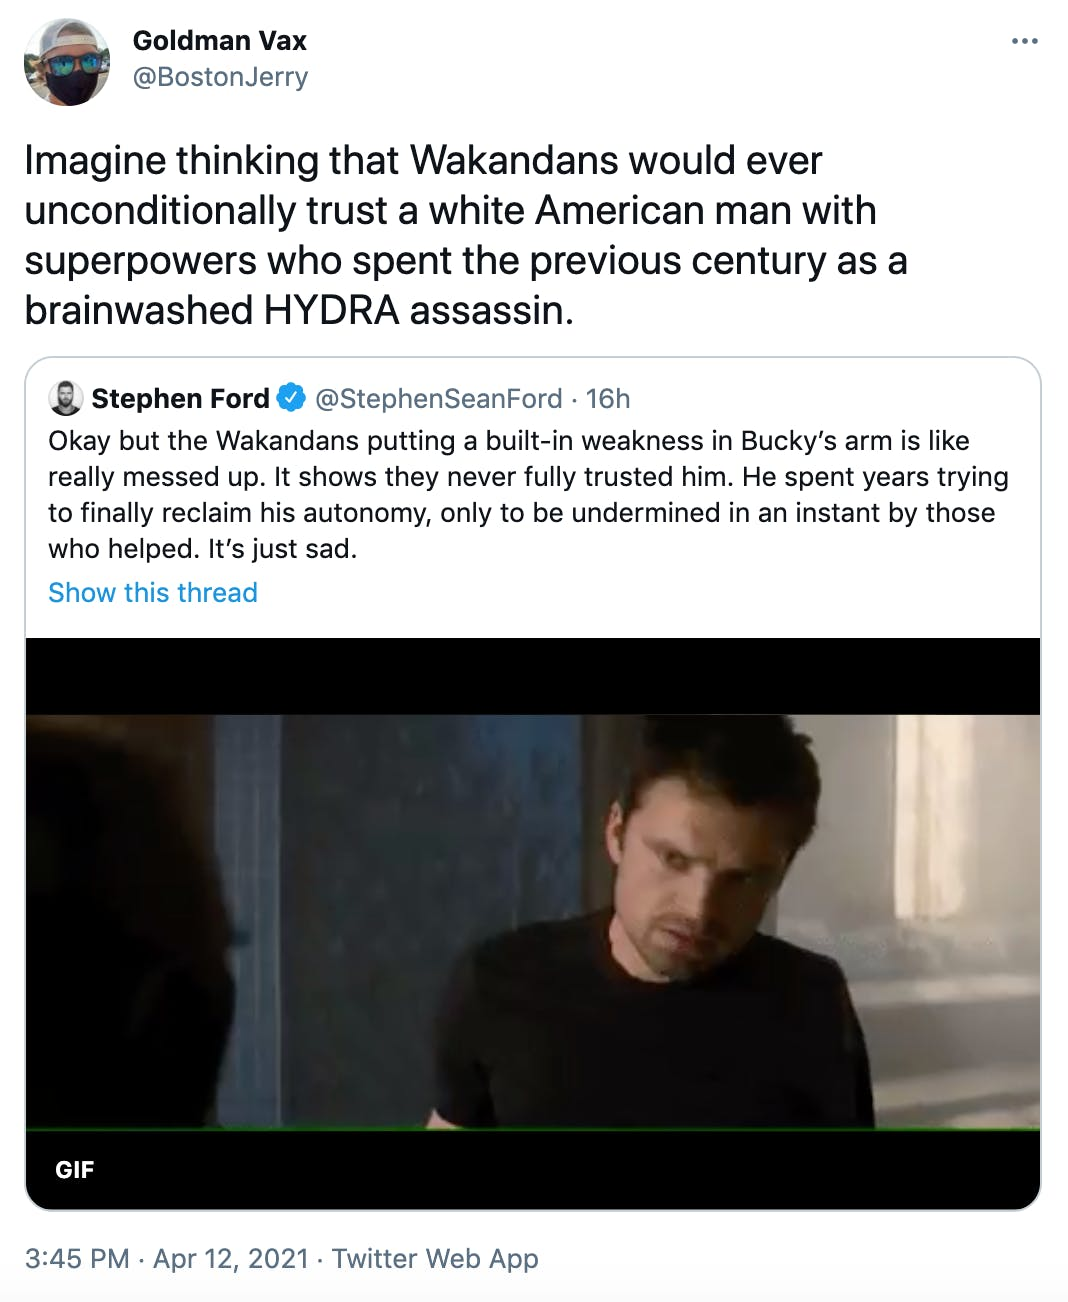 Imagine thinking that Wakandans would ever unconditionally trust a white American man with superpowers who spent the previous century as a brainwashed HYDRA assassin.